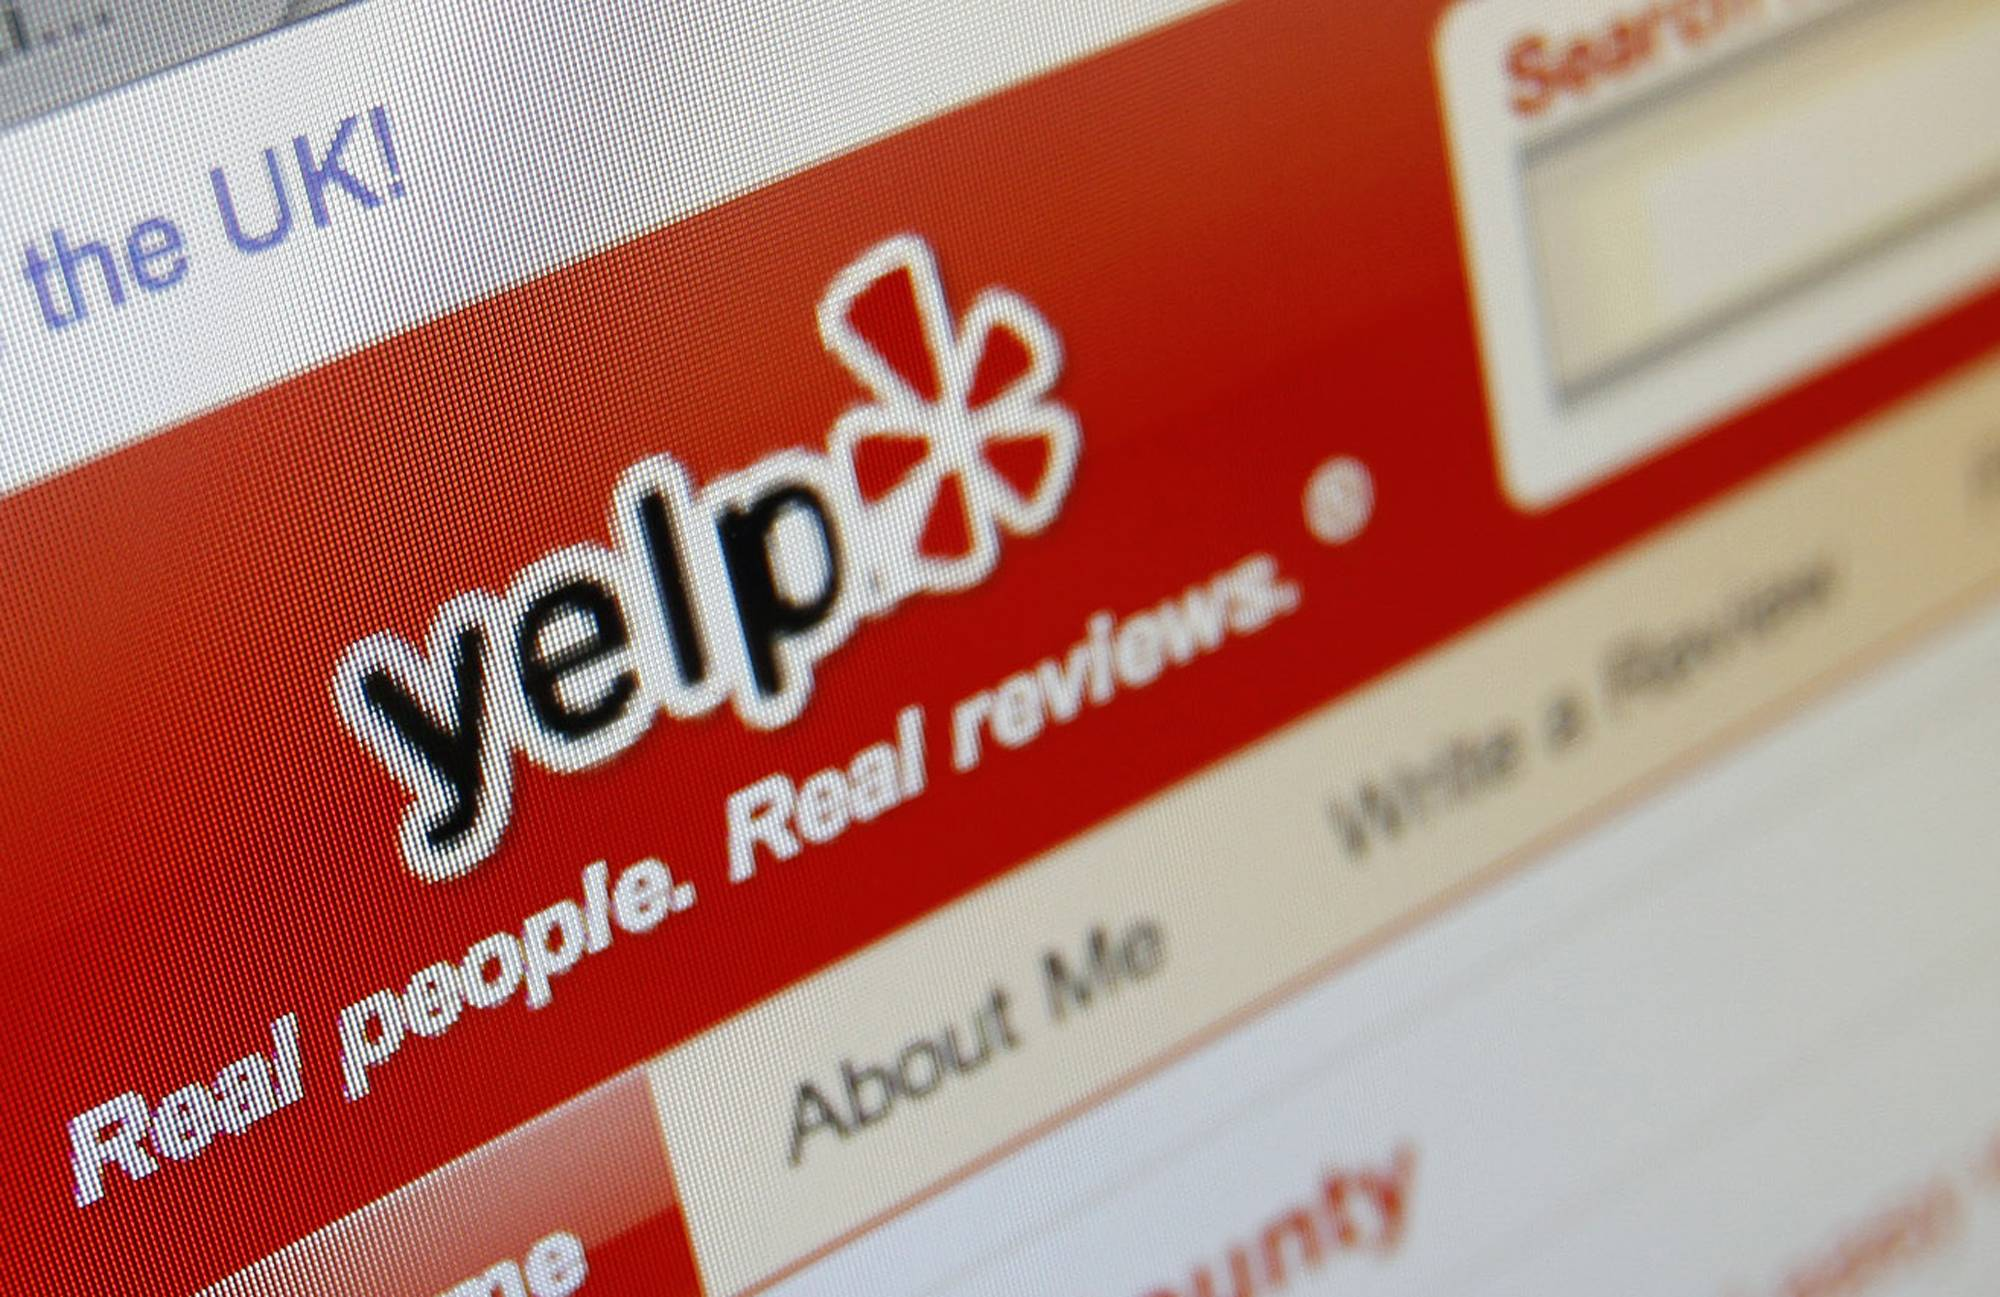 New York City is using a novel way to spot food-poisoning cases -- reading Yelp restaurant reviews. Health officials found three, unreported outbreaks by sifting through hundreds of thousands of comments on the popular website.